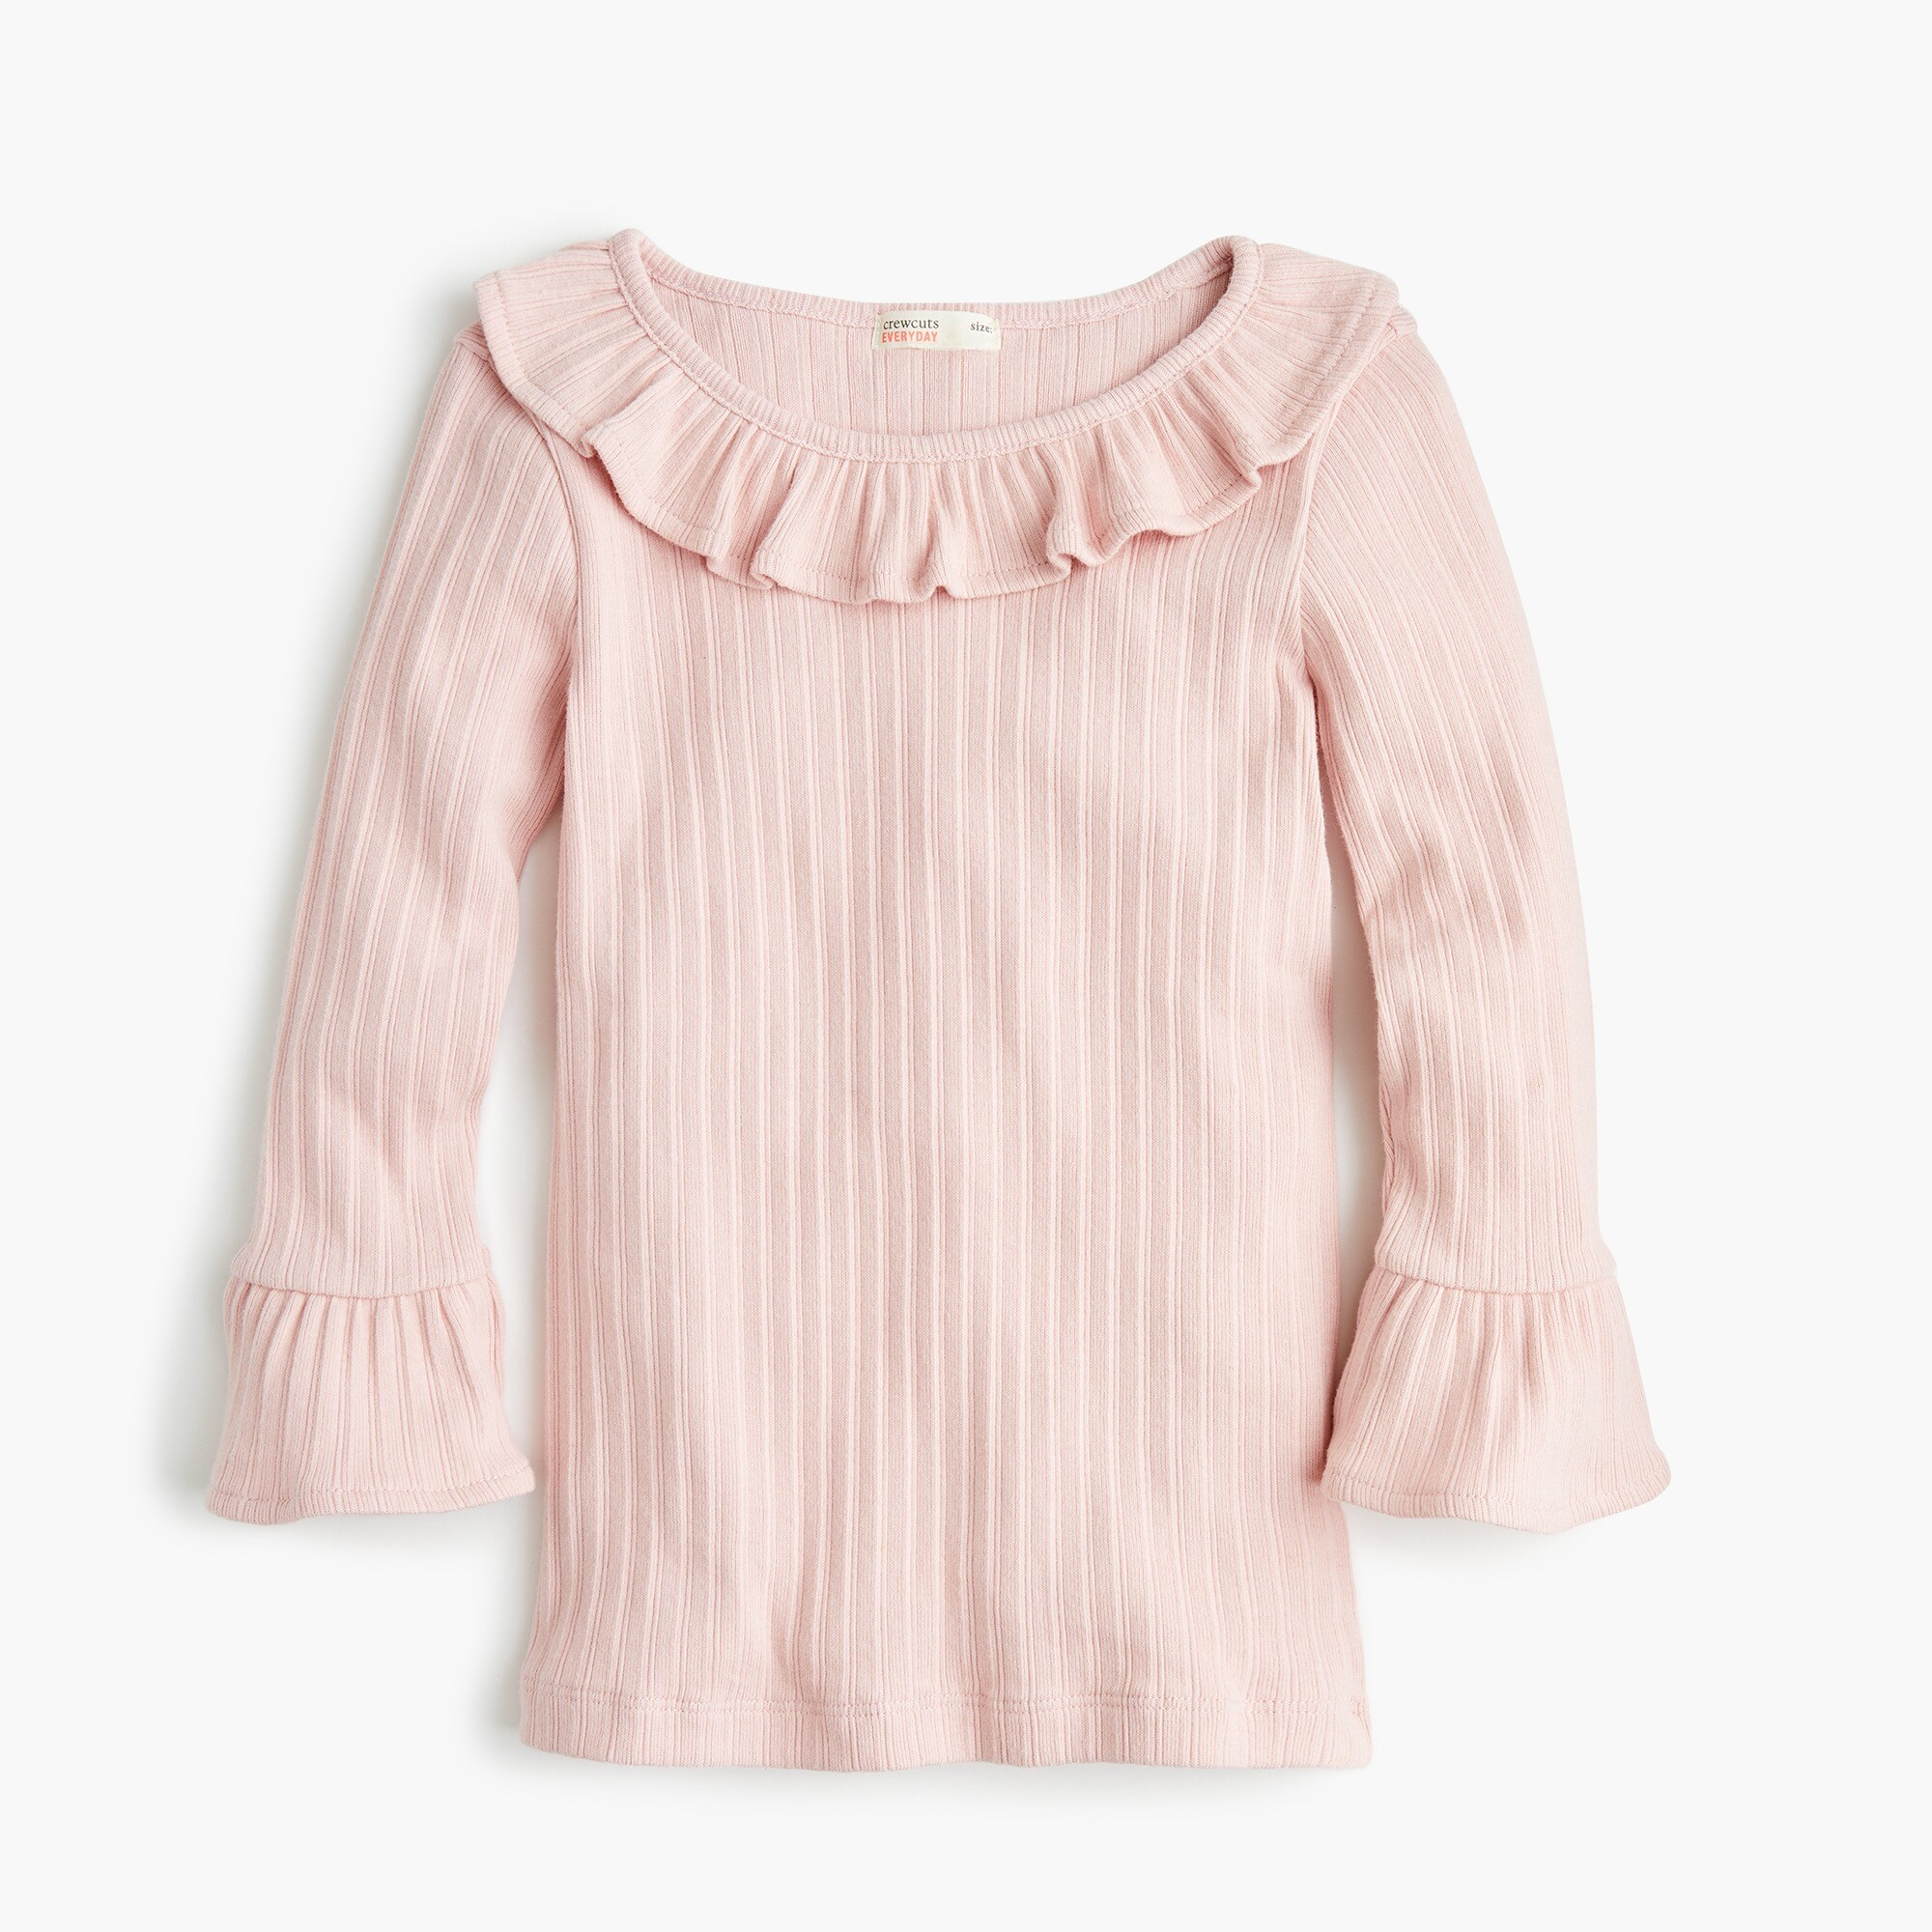 girls Girls' ribbed top with ruffles